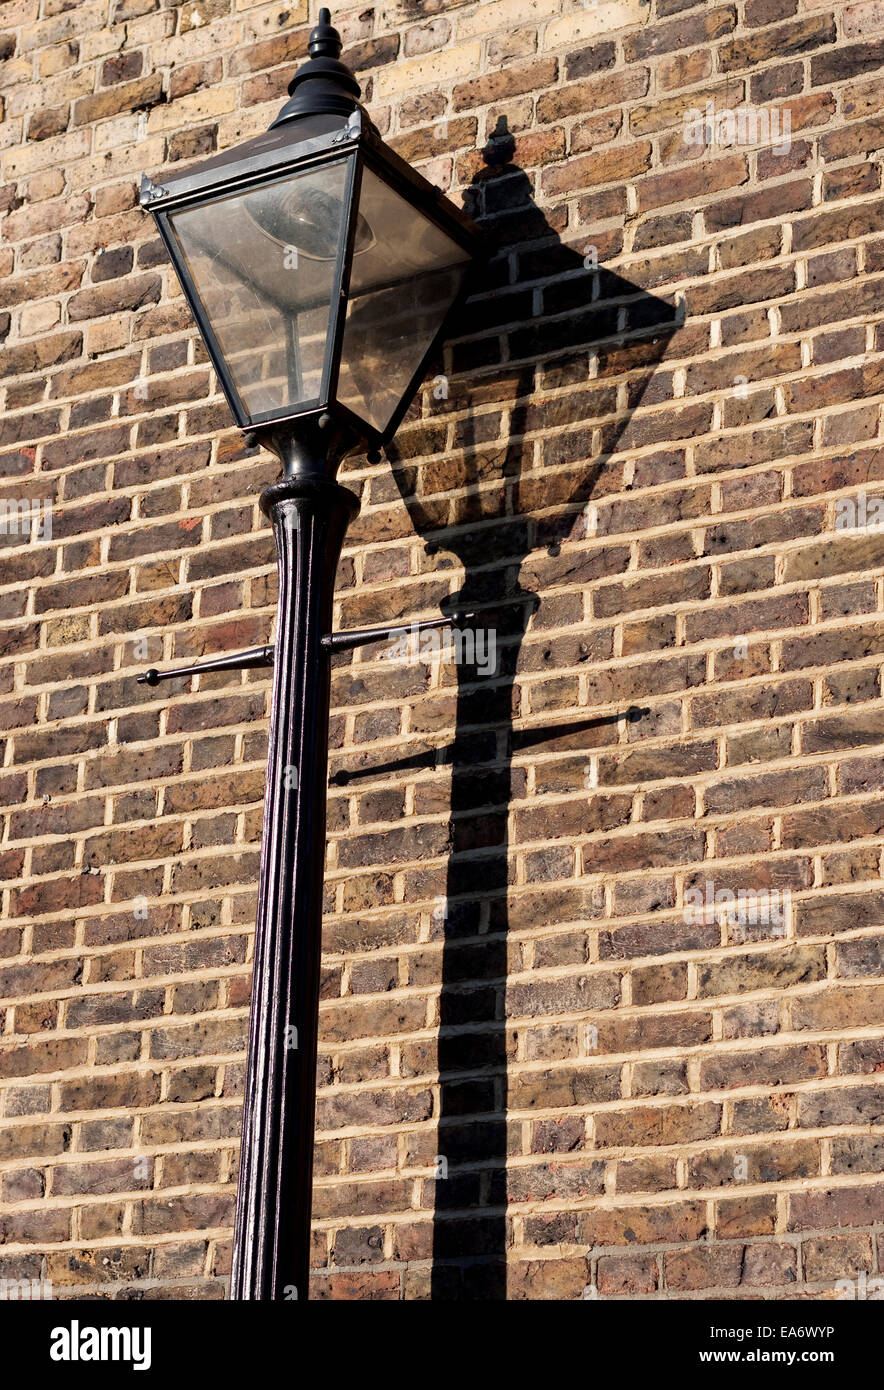 A gas street light in London casts a shadow on a brick wall - Stock Image